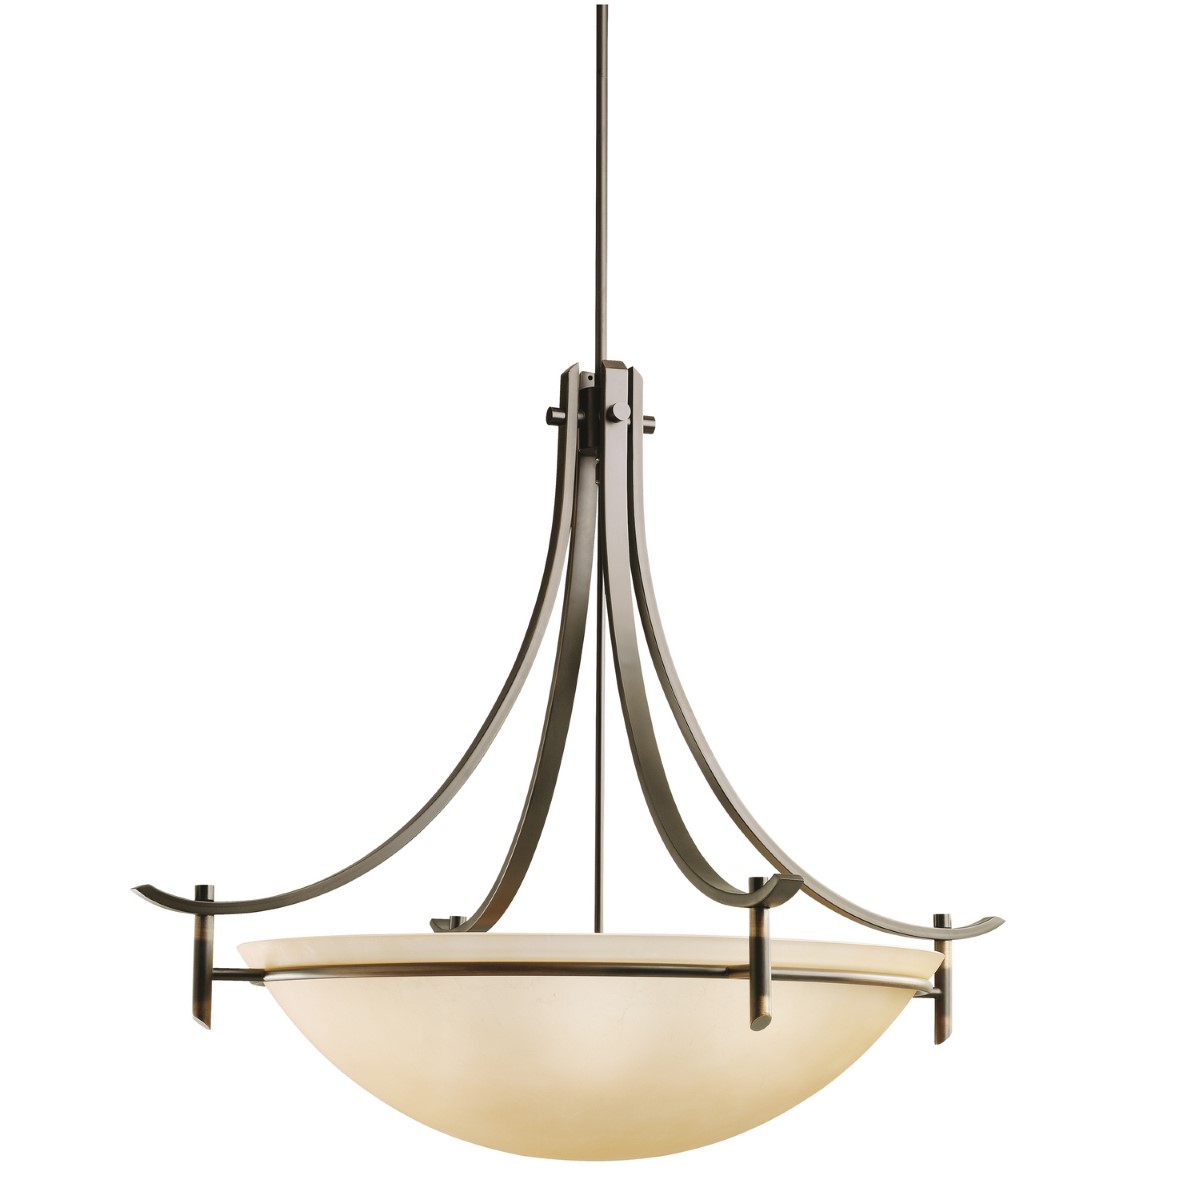 Kichler Olympia Olympia Pendant Light with Sunset Marble Marble Shade - Olde Bronze (3279OZ)